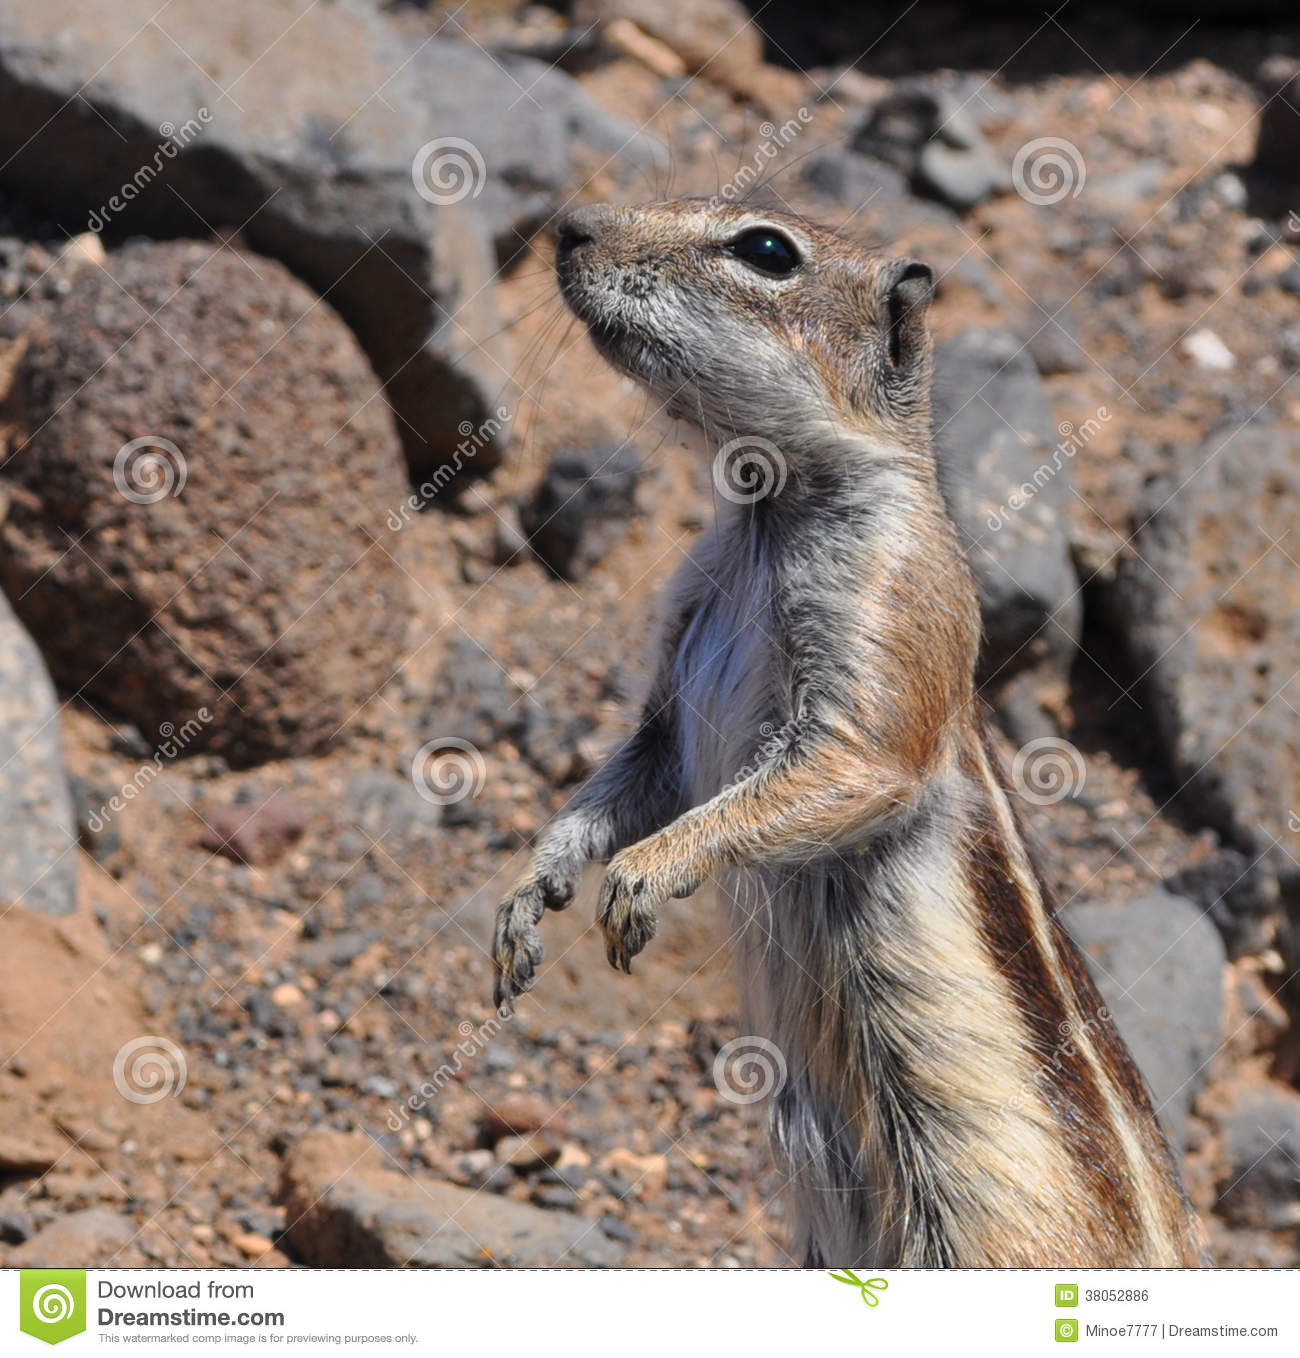 Barbary Ground Squirrel clipart #13, Download drawings